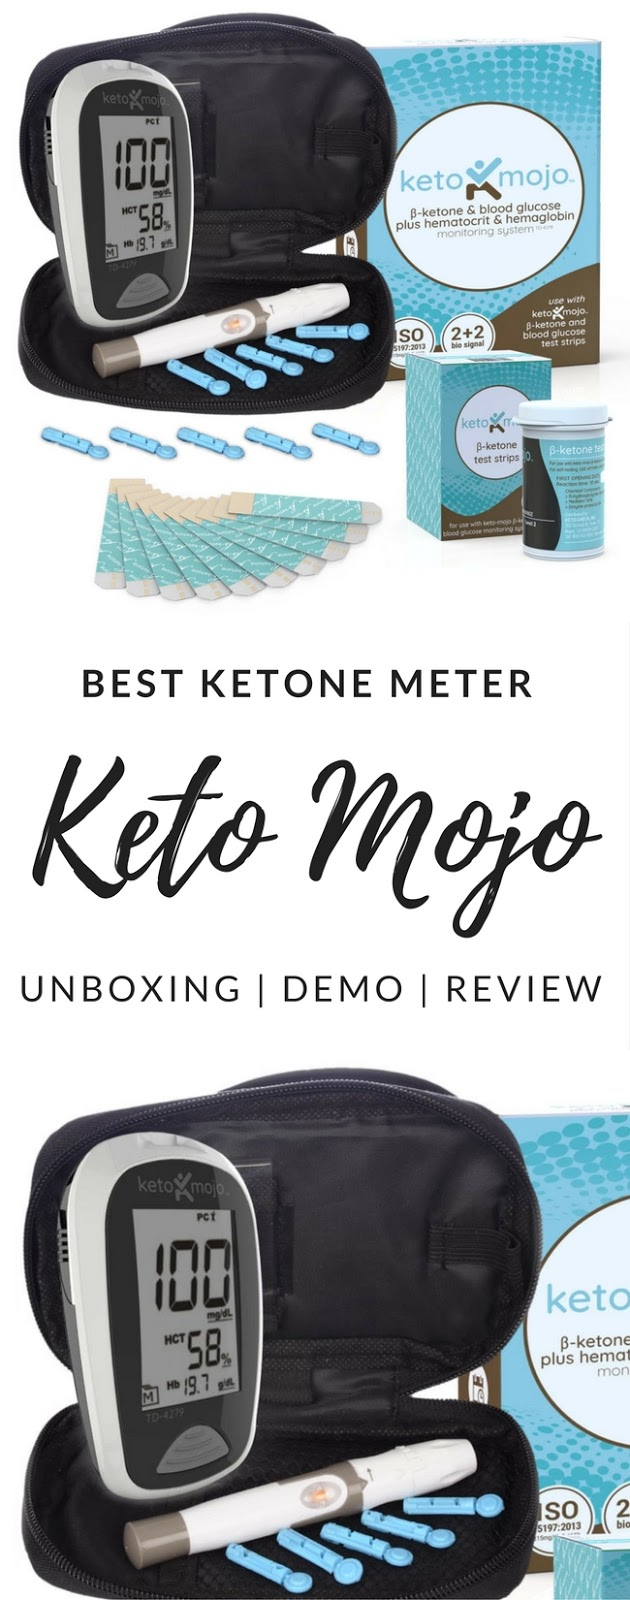 Best Ketone Meter - Keto Mojo Unboxing, Demo, and Review